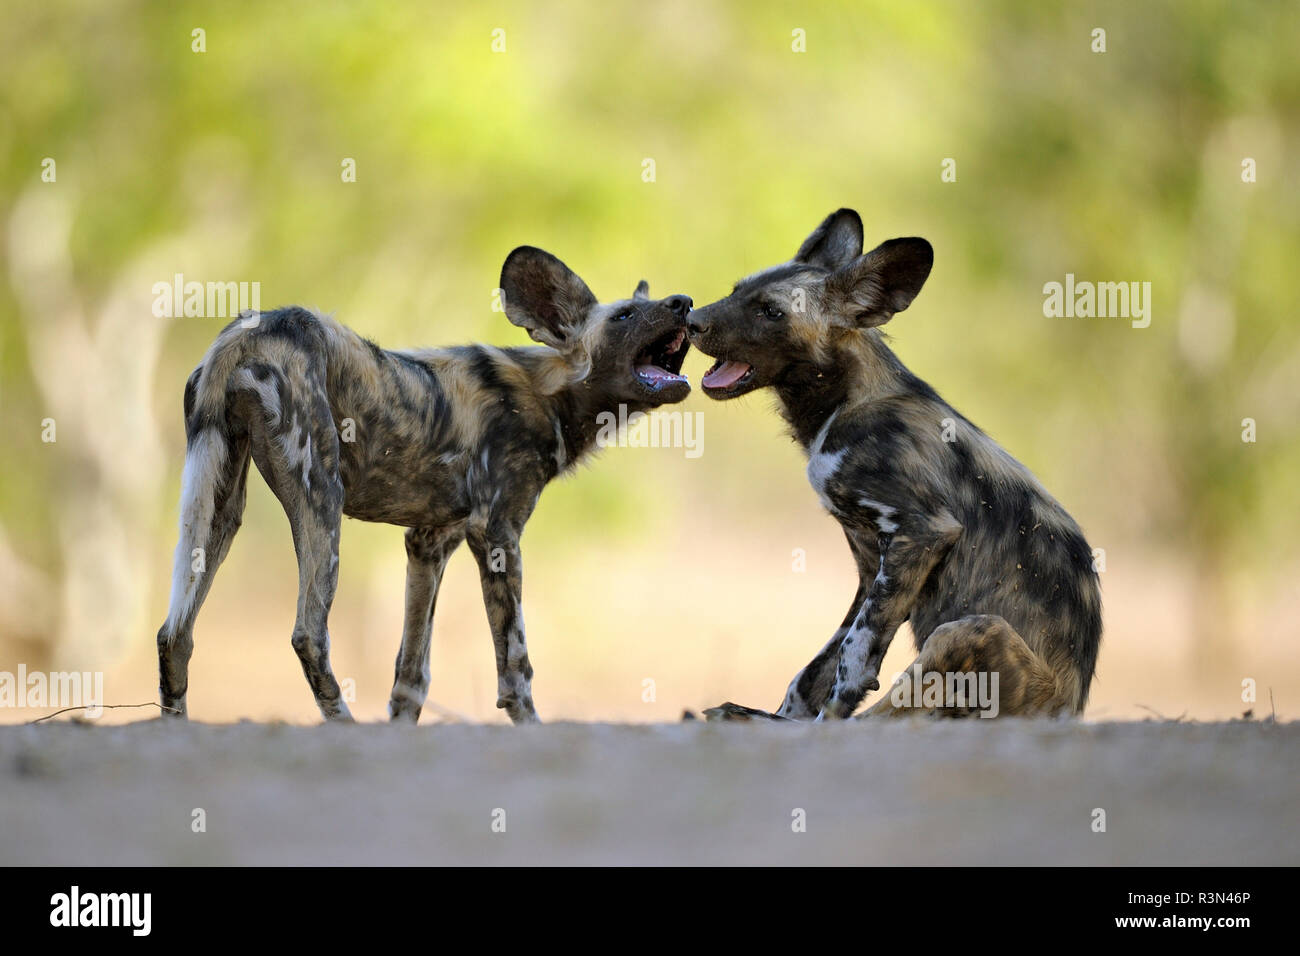 African wild dog (Lycaon pictus) young playing while the rest of the group is taking a nap, Mana Pools, Zimbabwe - Stock Image